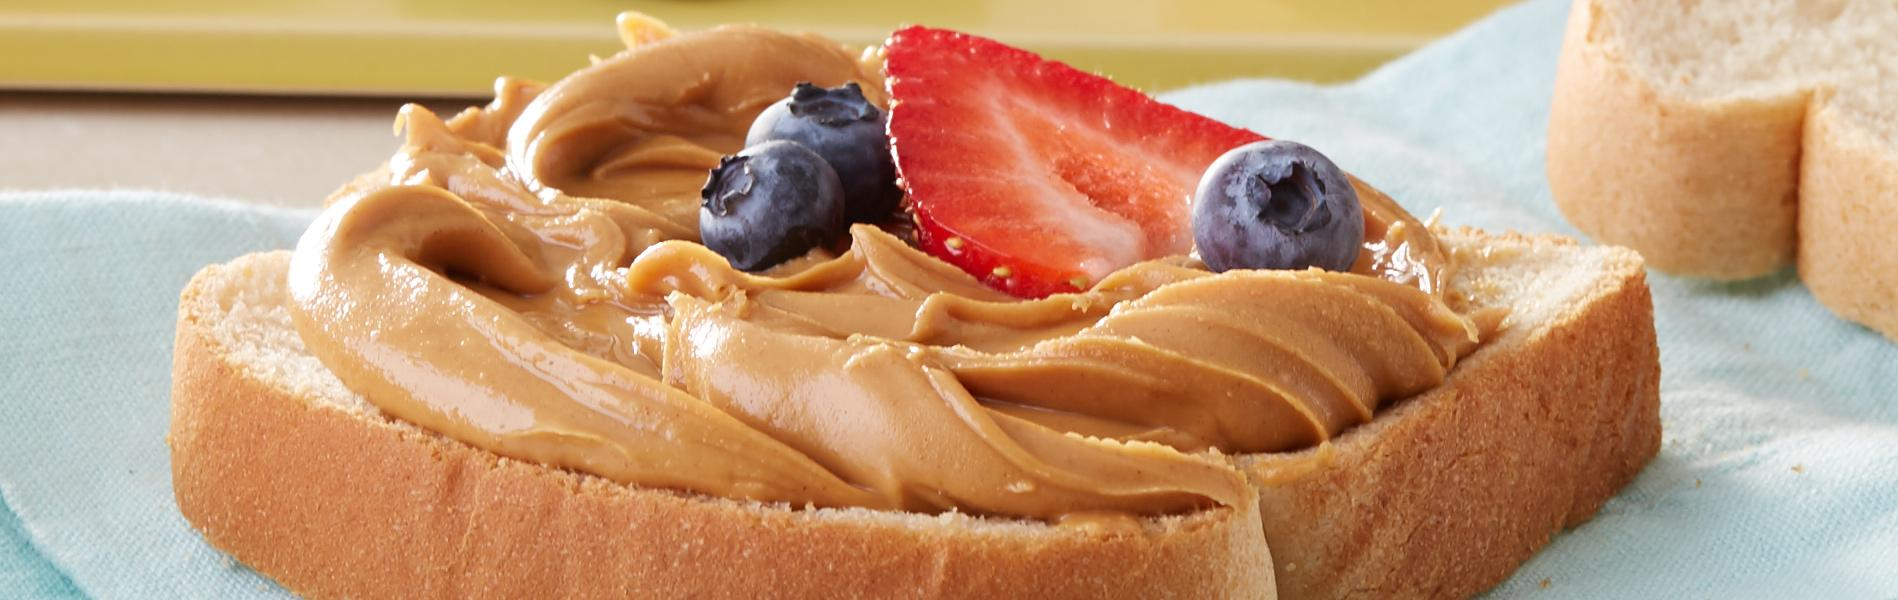 Peanut Butter and fruit on Classic White Bread